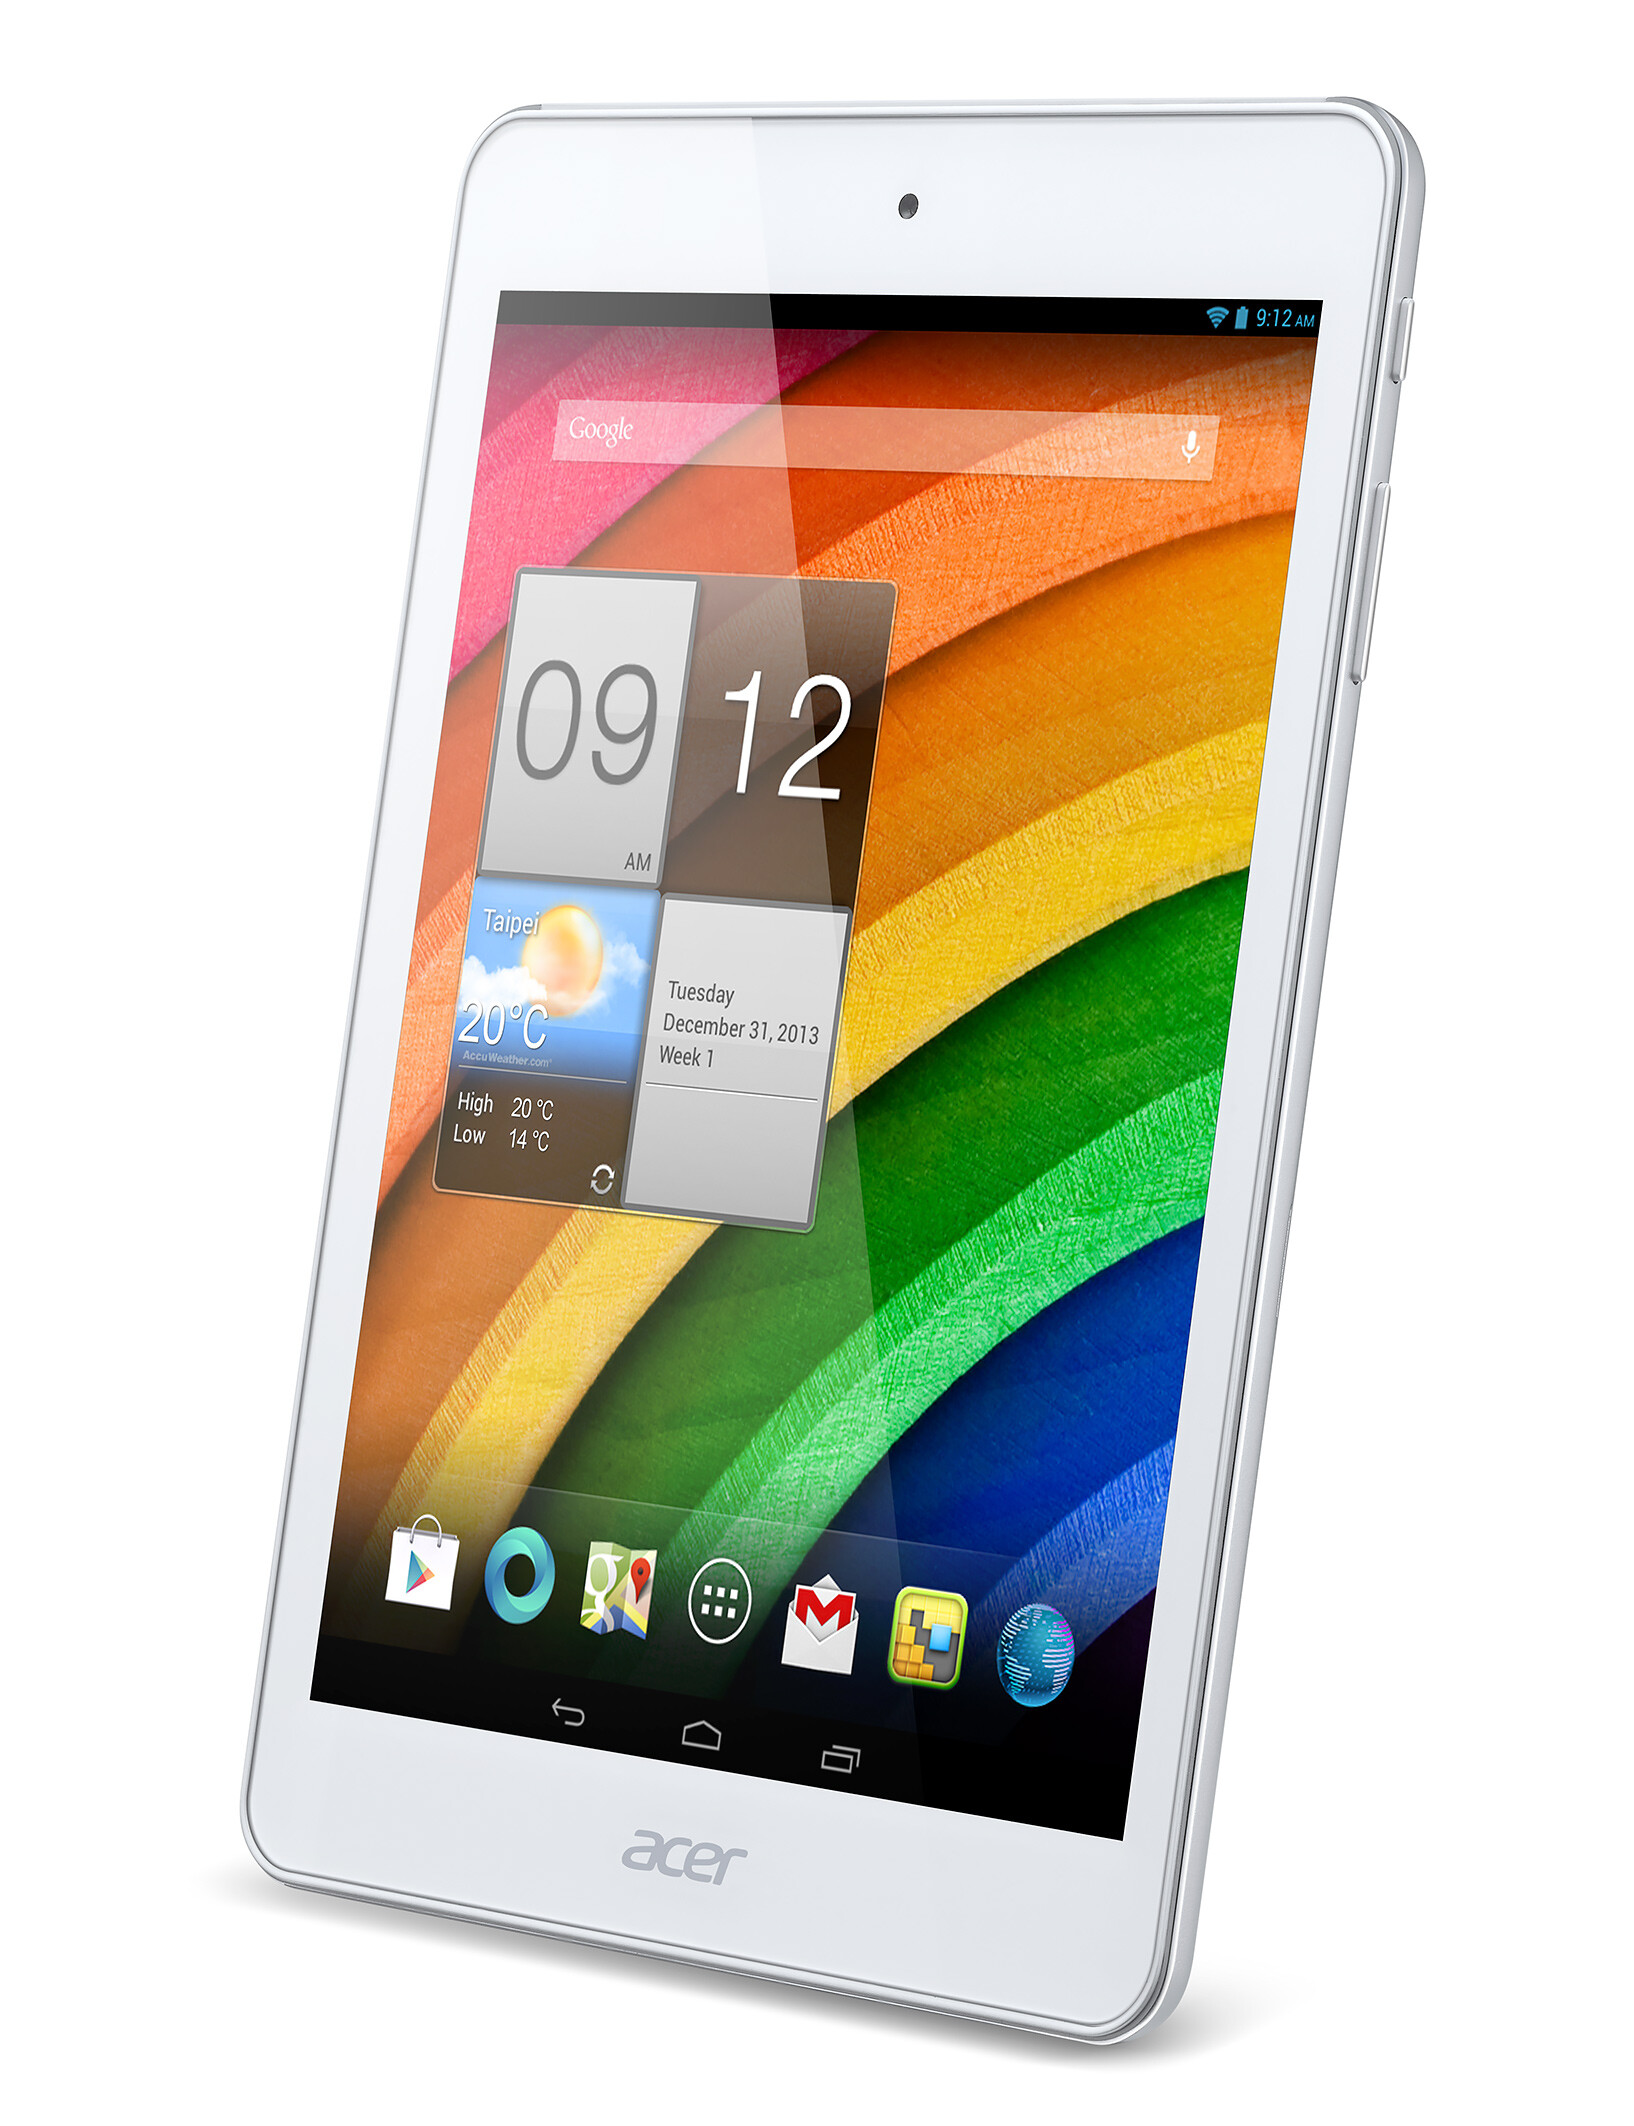 Acer Iconia A1 830 1479 Specs